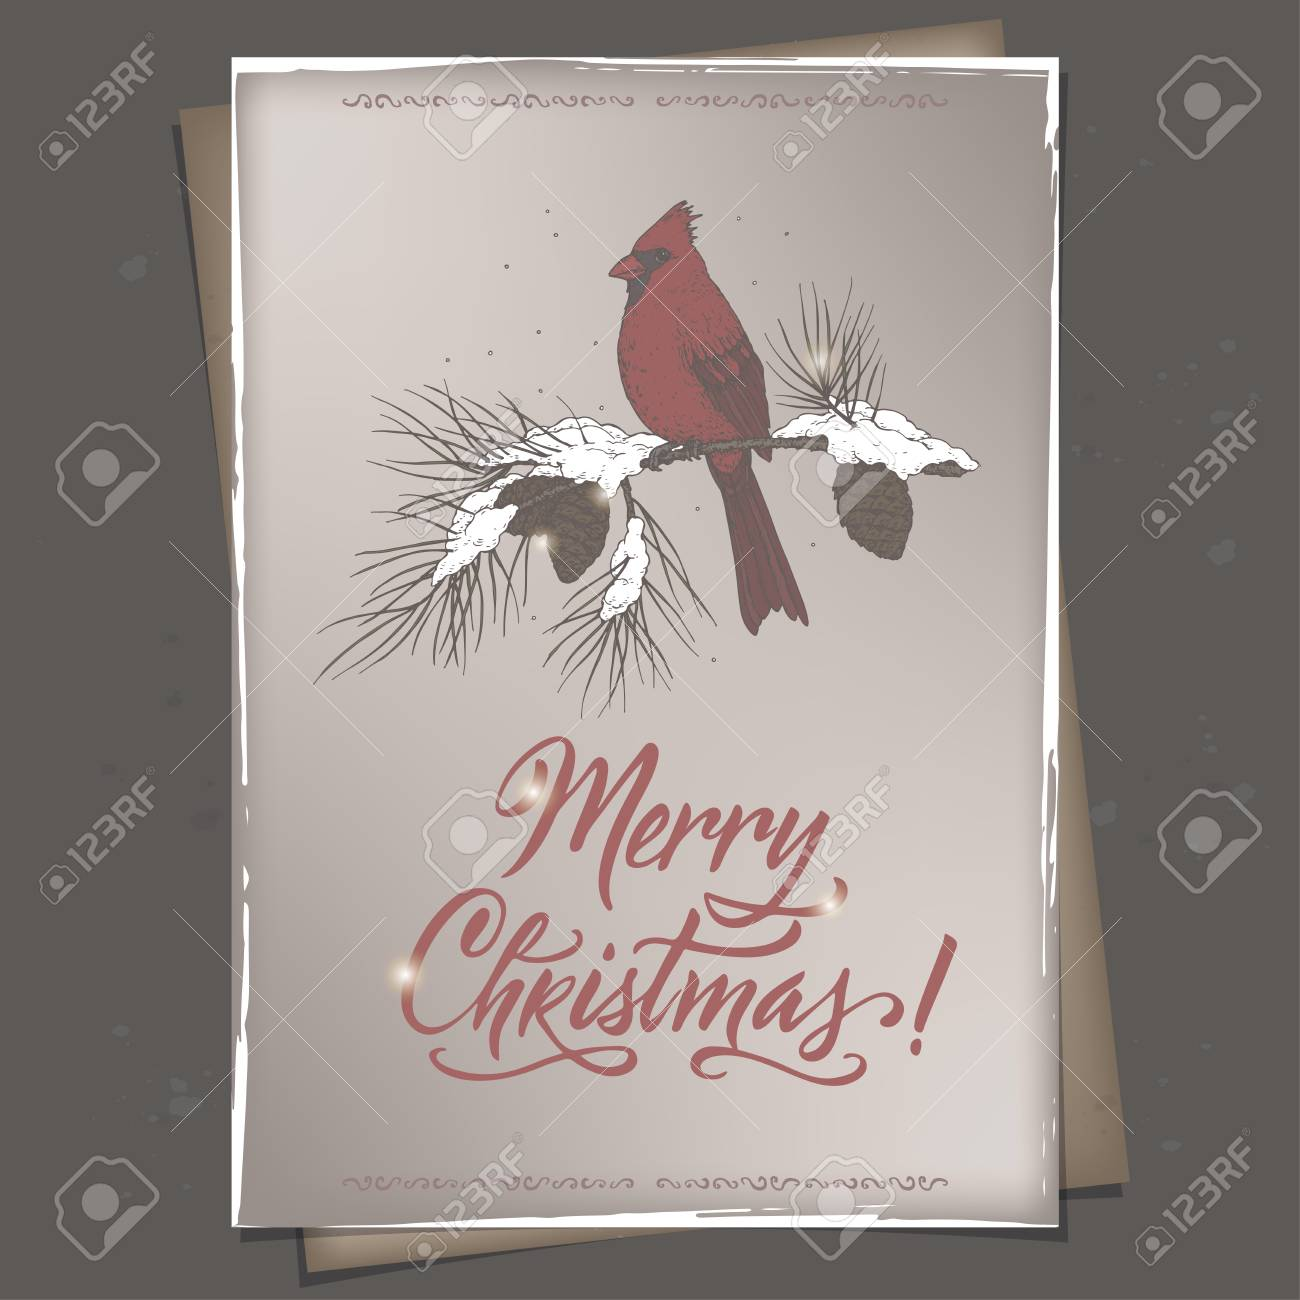 Vintage Color Christmas Greeting Card With Cardinal Bird On Mailbox Royalty Free Cliparts Vectors And Stock Illustration Image 89861385